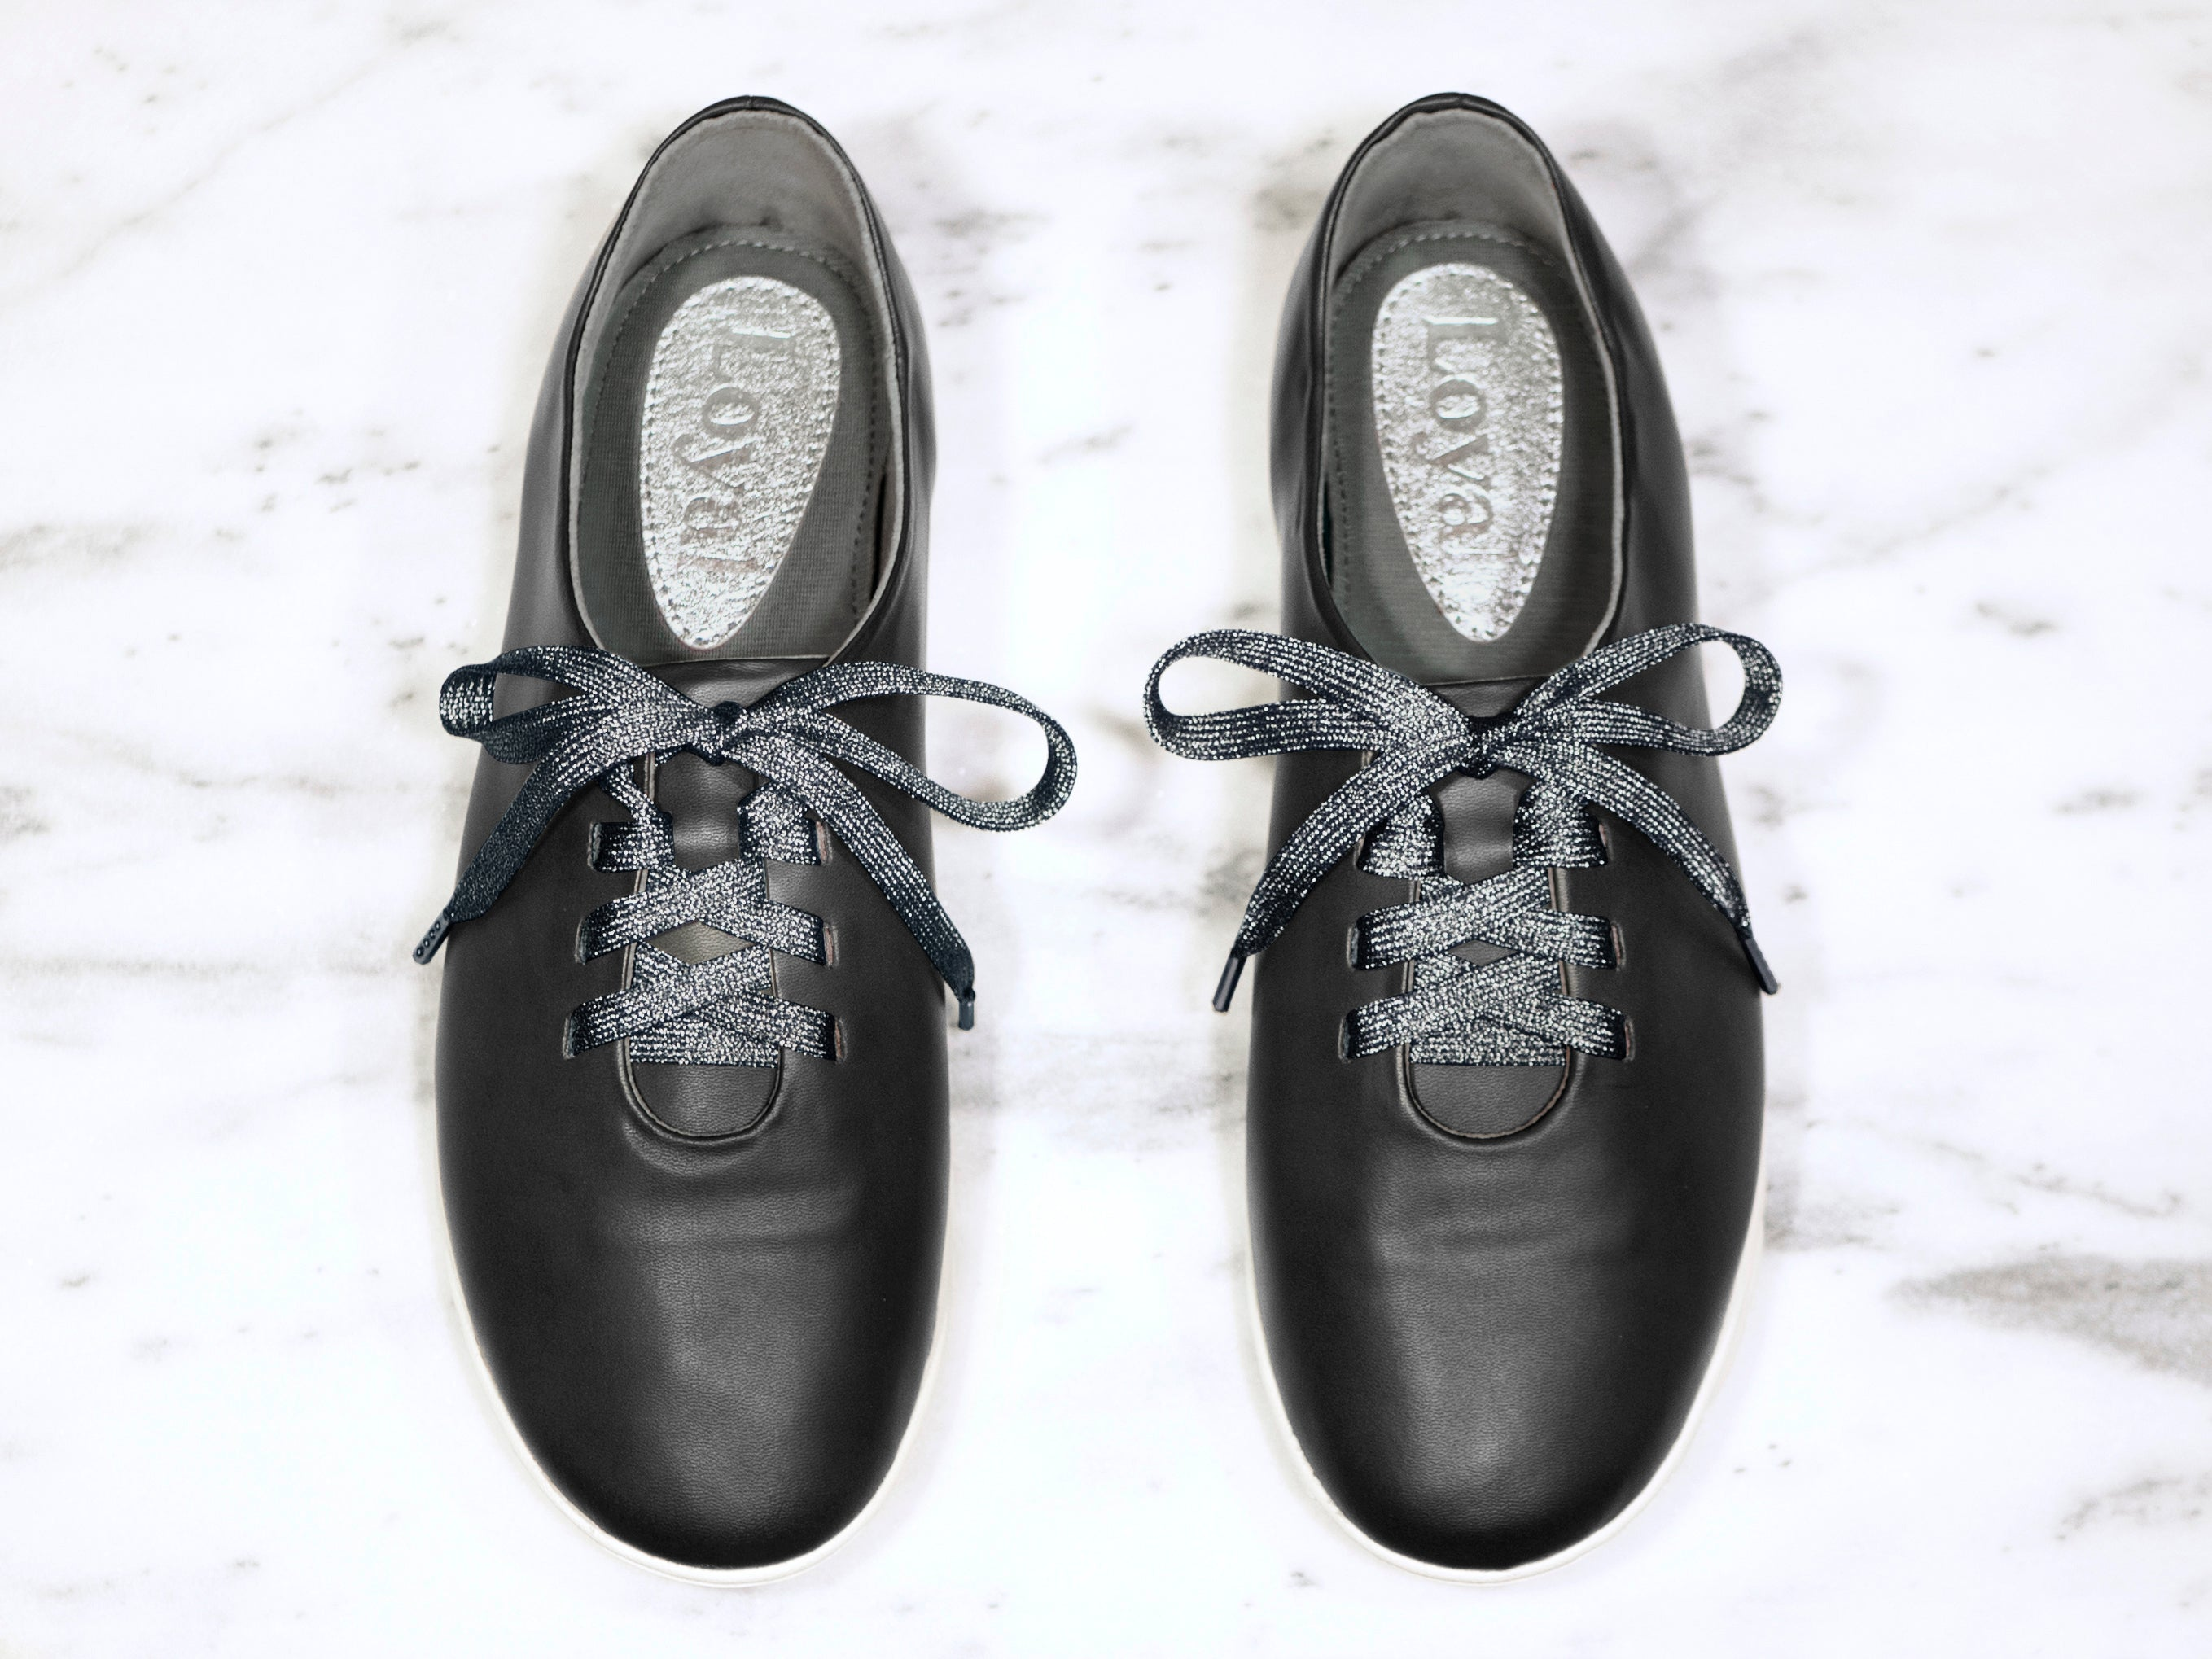 MADE-TO-ORDER Garden [Sneaker] Black